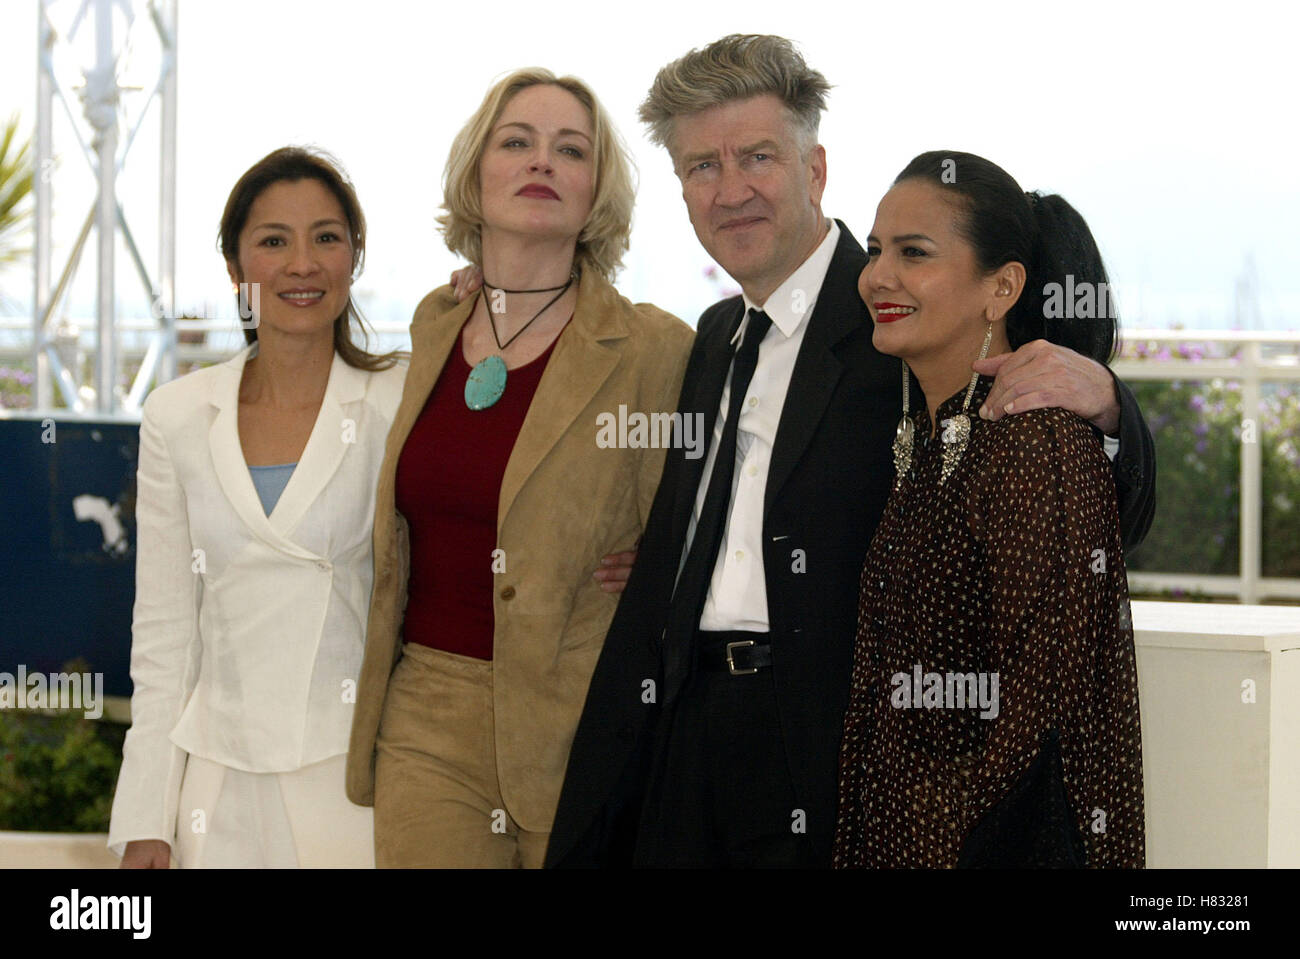 M YEOH S STONE D LYNCH C HAKIM CANNES FILM FESTIVAL CANNES FILM FESTIVAL CANNES FRANCE 15 May 2002 - Stock Image